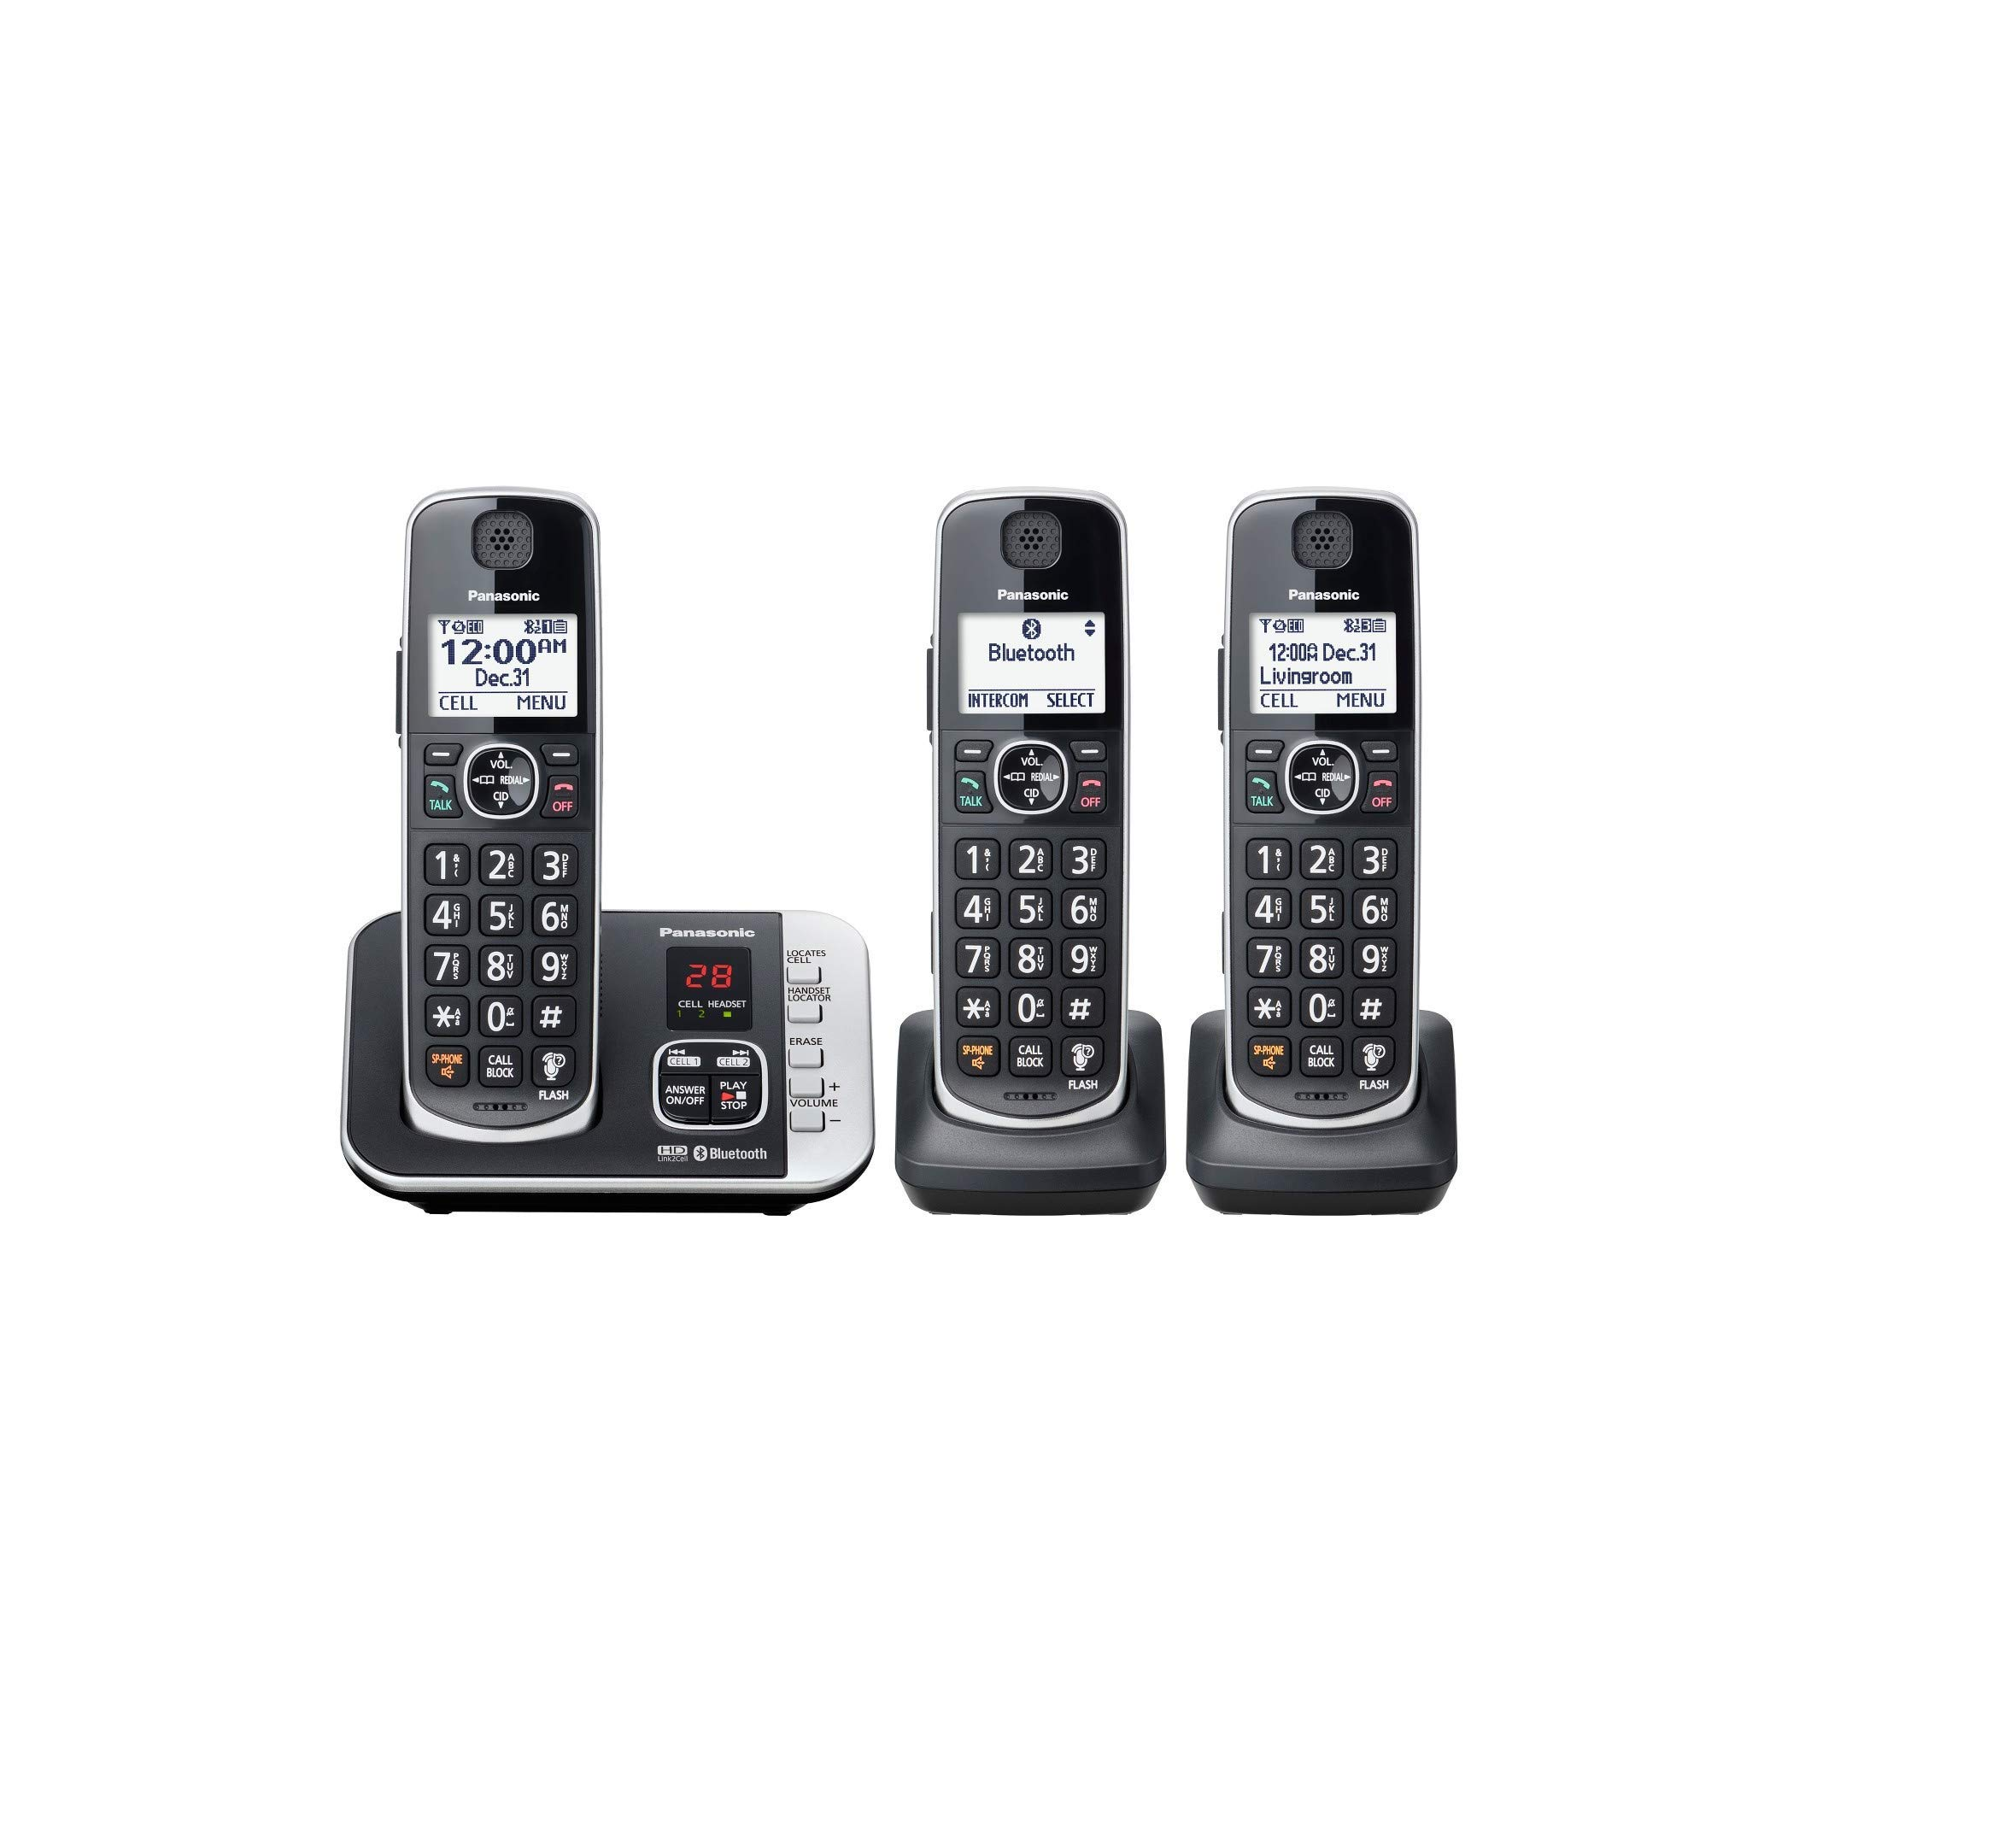 Panasonic KX-TGE633M DECT 6.0 Digital Technology Expandable 3 Handset Cordless Phone with Answering Machine (Renewed) by Panasonic